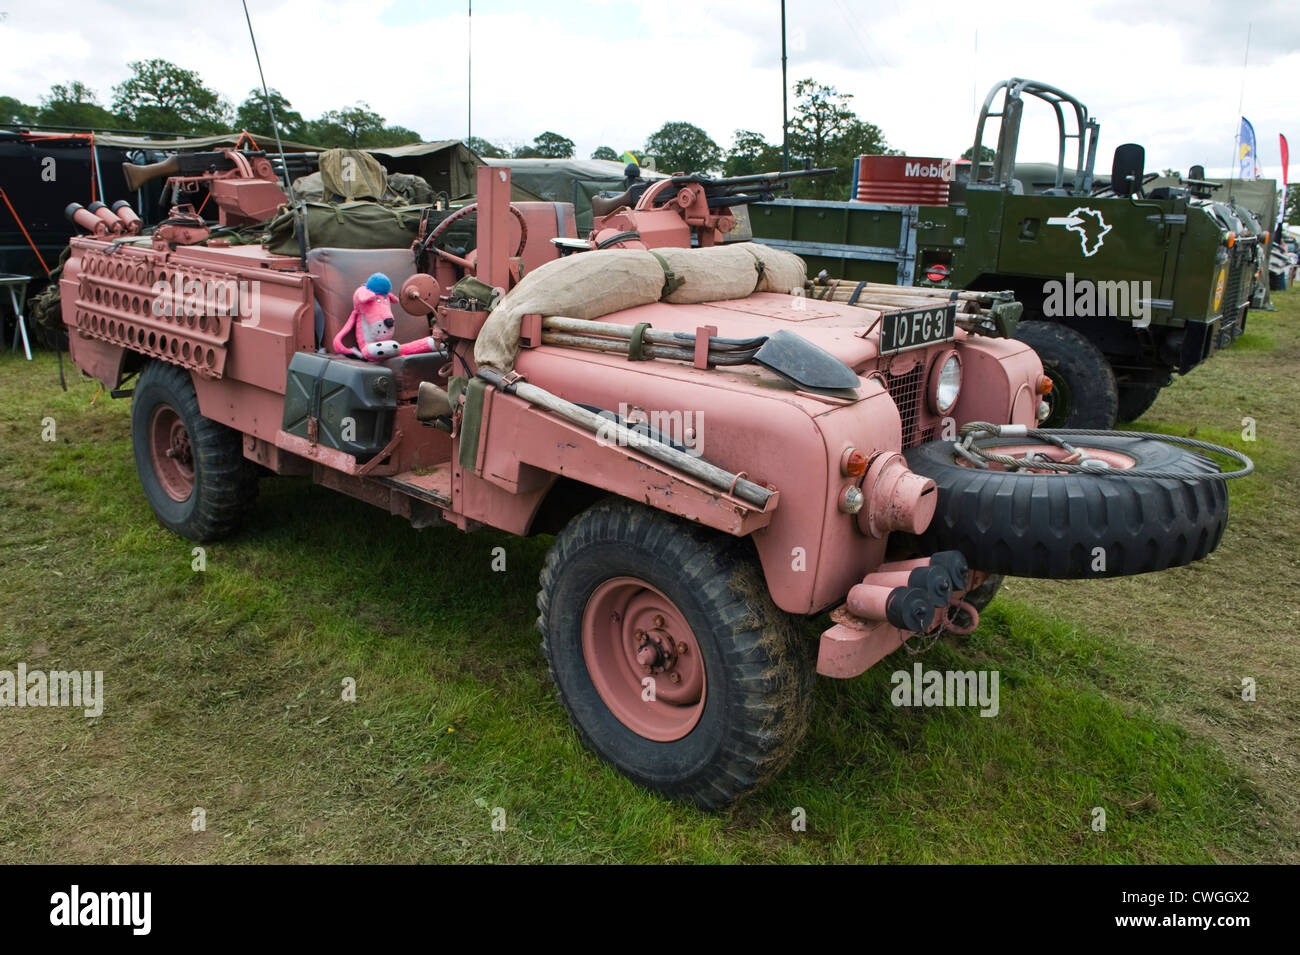 Land Rover 4x4 SAS special forces Pink Panther military vehicle at annual Eastnor Land Rover Show Herefordshire - Stock Image